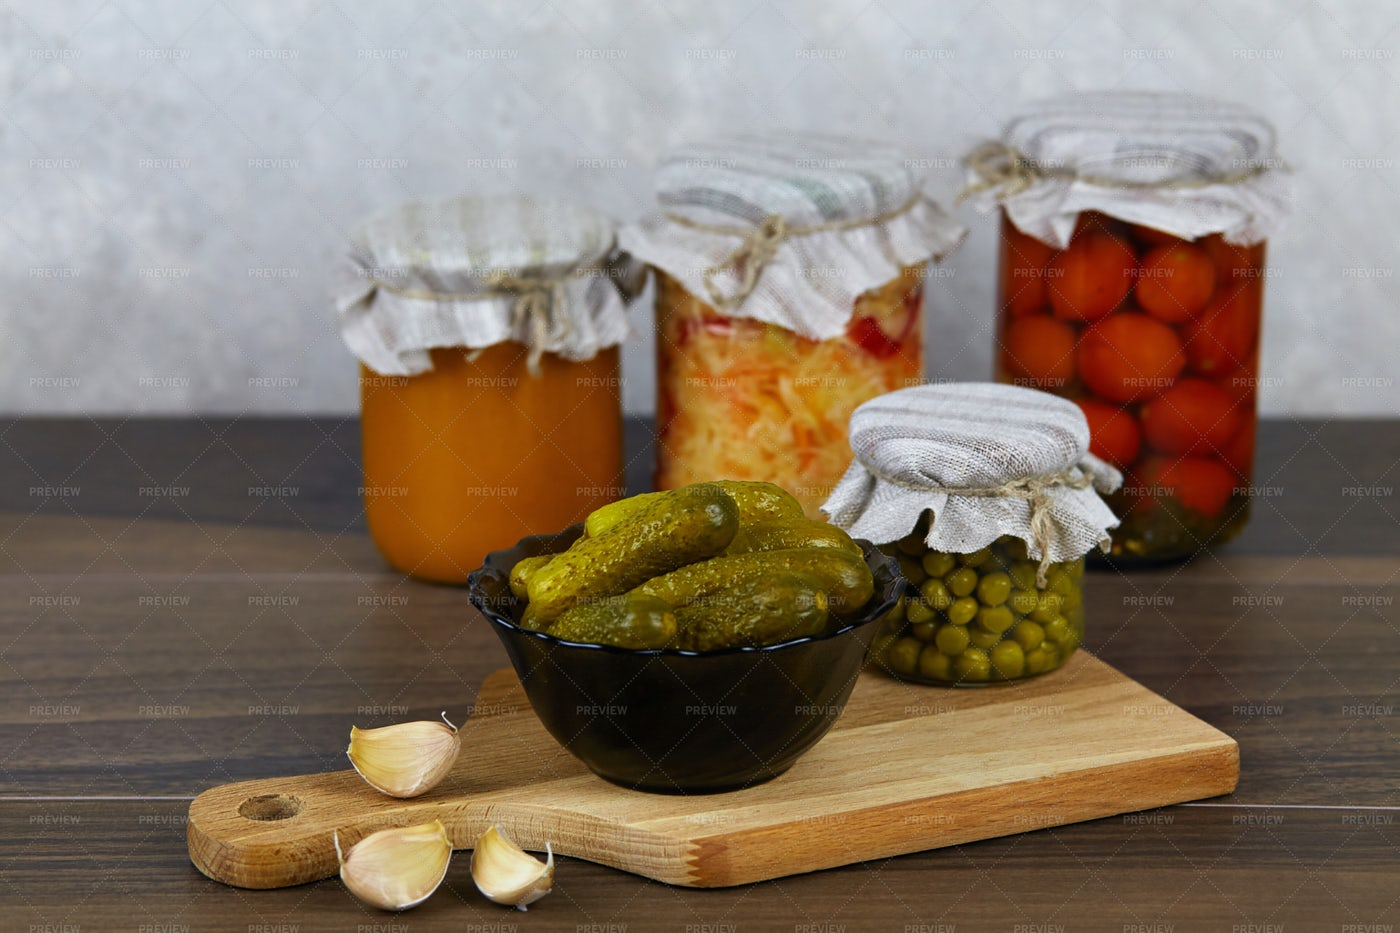 Canned Vegetables In Jars: Stock Photos